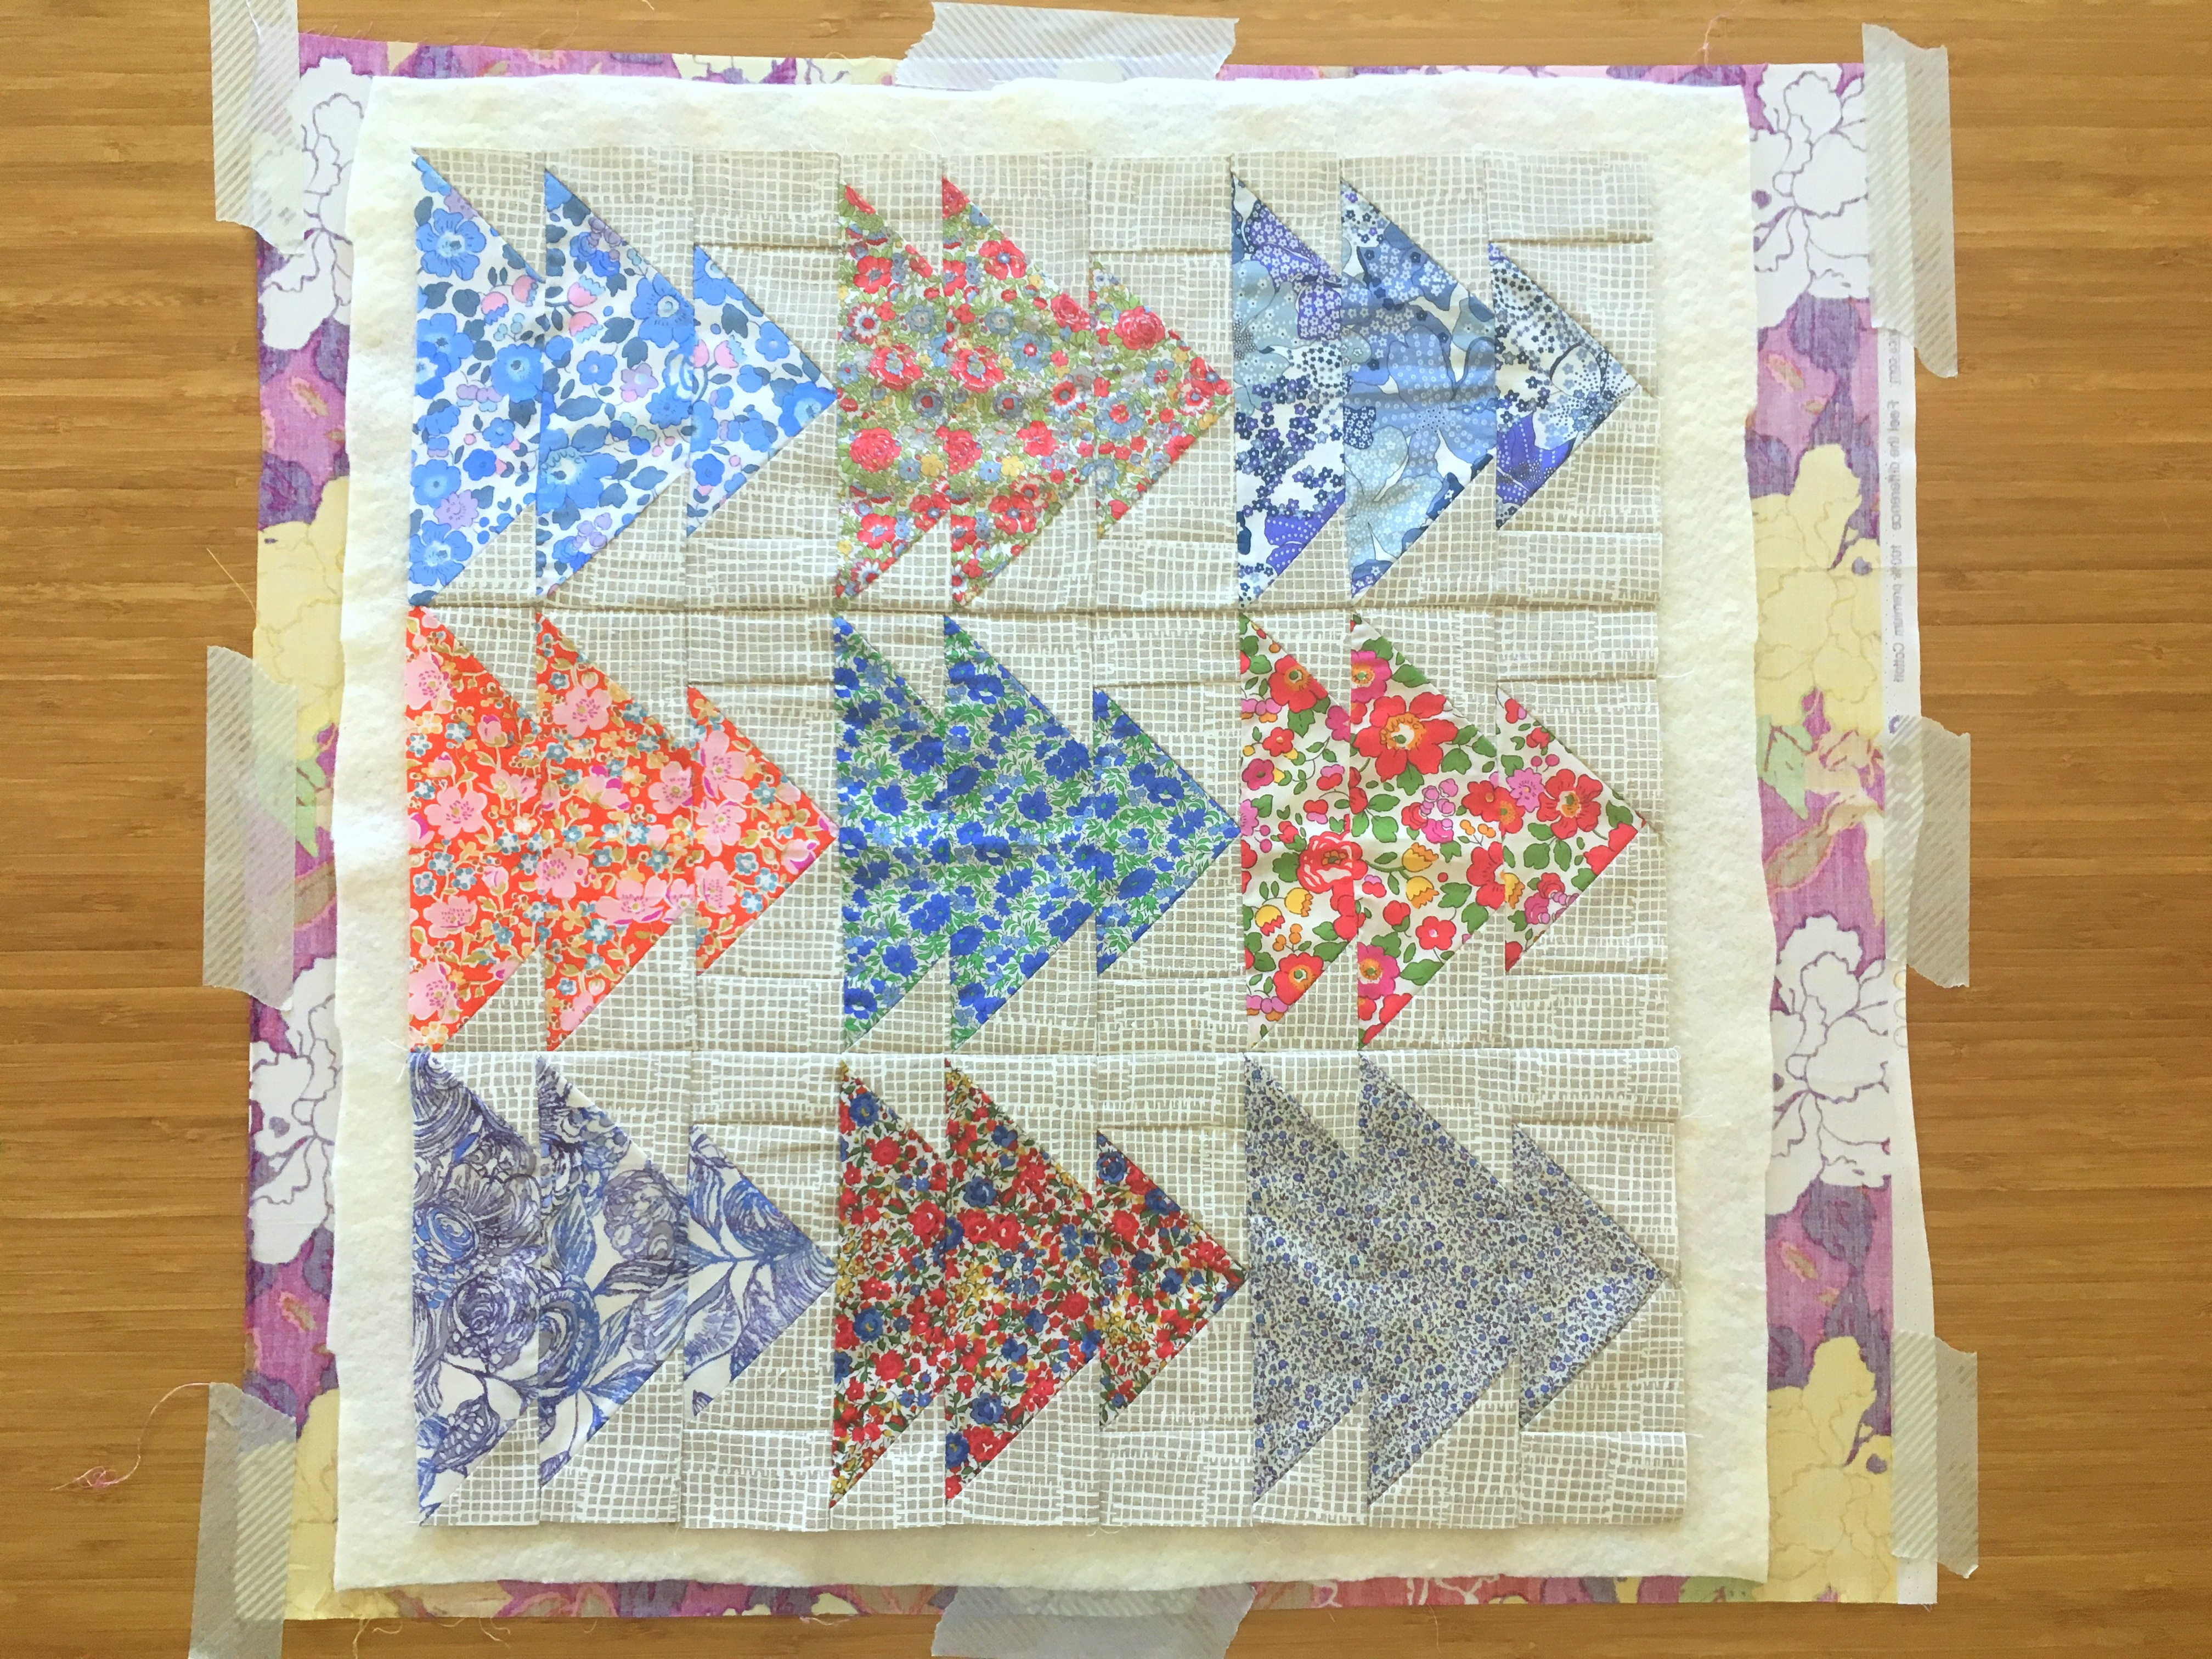 How To Baste A Quilt - Pins And Spray | Blossom Heart Quilts : sandwich quilt instructions - Adamdwight.com